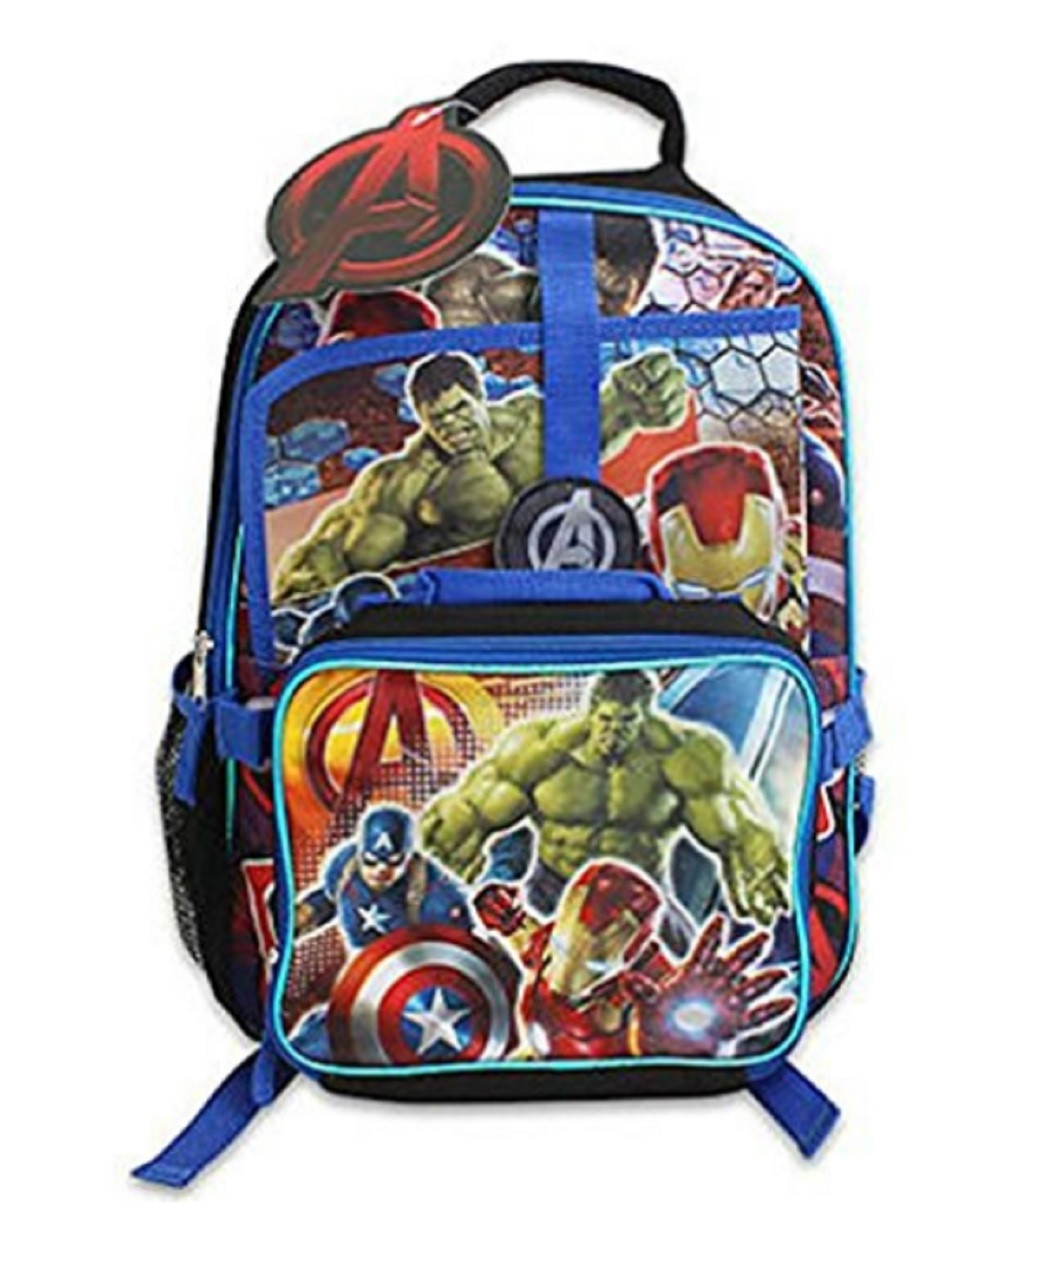 Avengers Notebook Backpack with Lunchbag